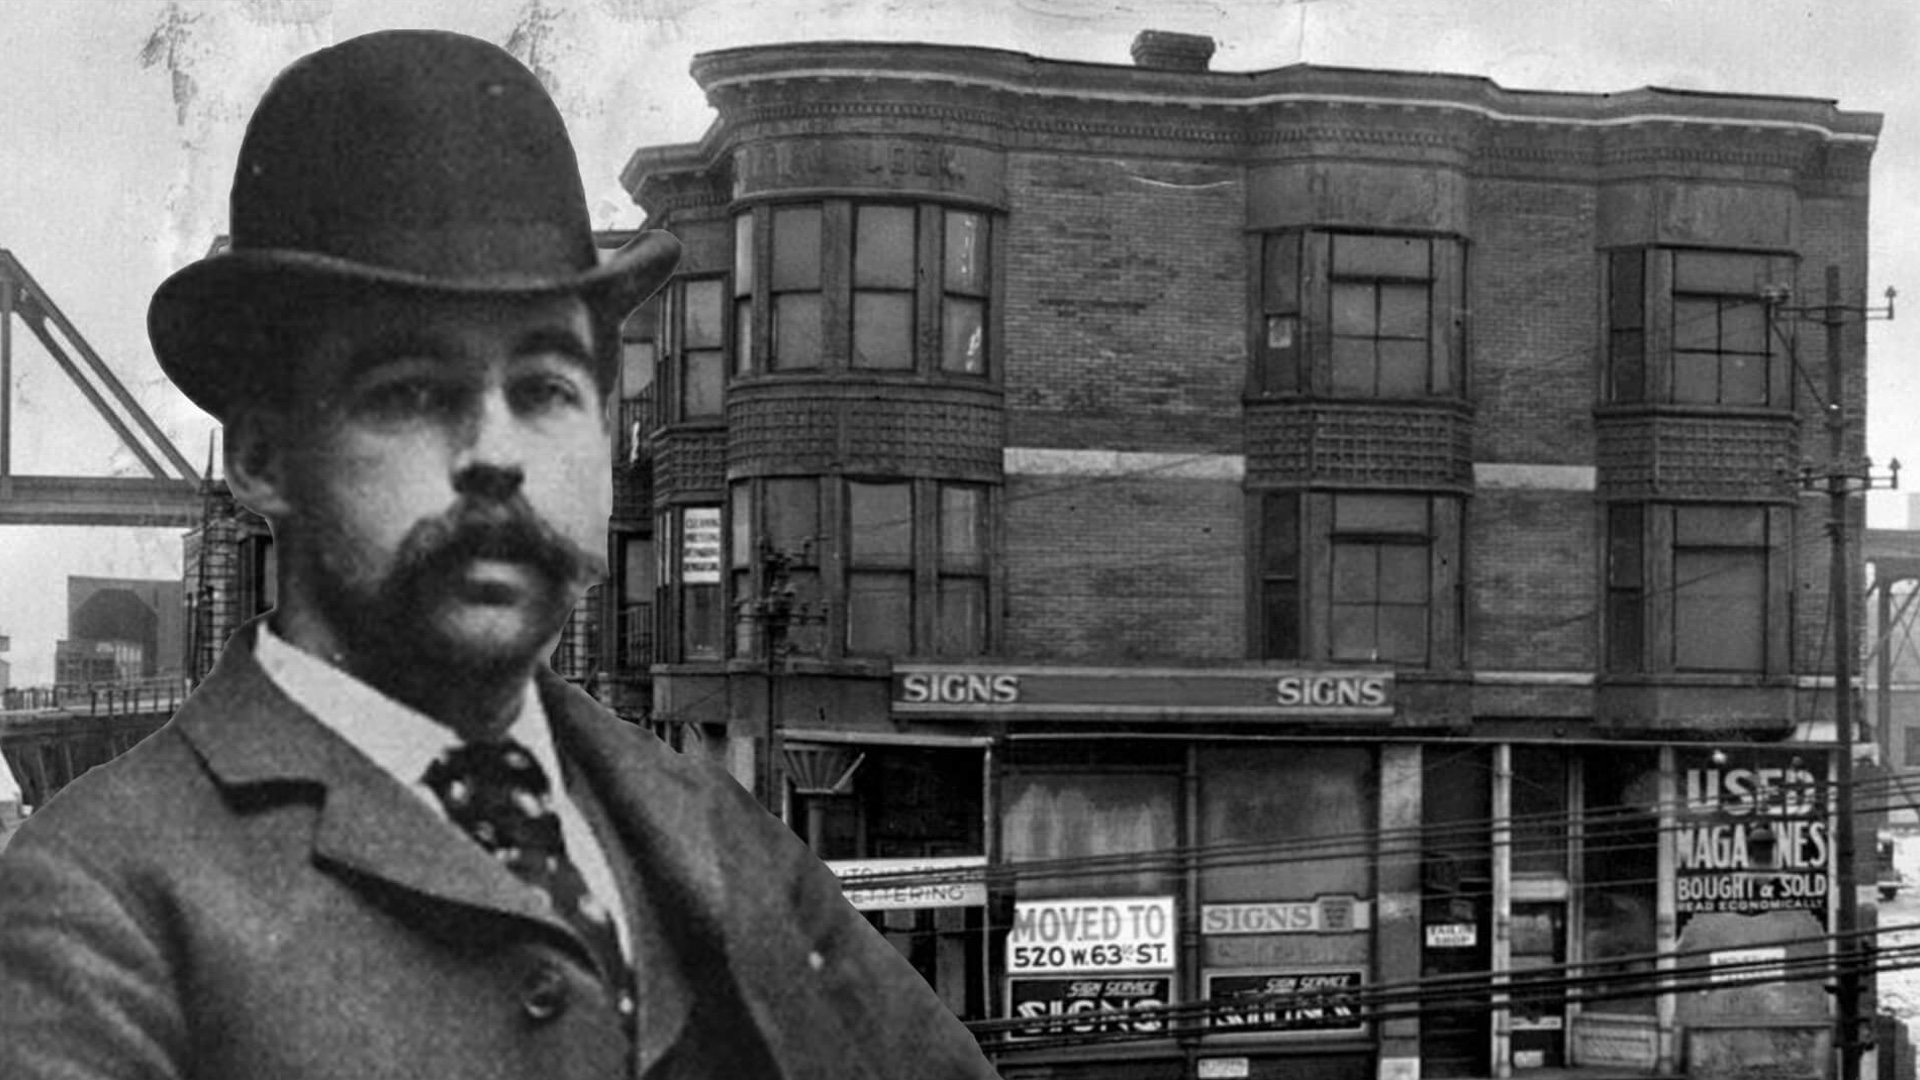 martin-scorsese-and-leonardo-dicaprios-hh-holmes-serial-killer-project-the-devil-in-the-white-city-is-headed-to-hulu-social.jpg